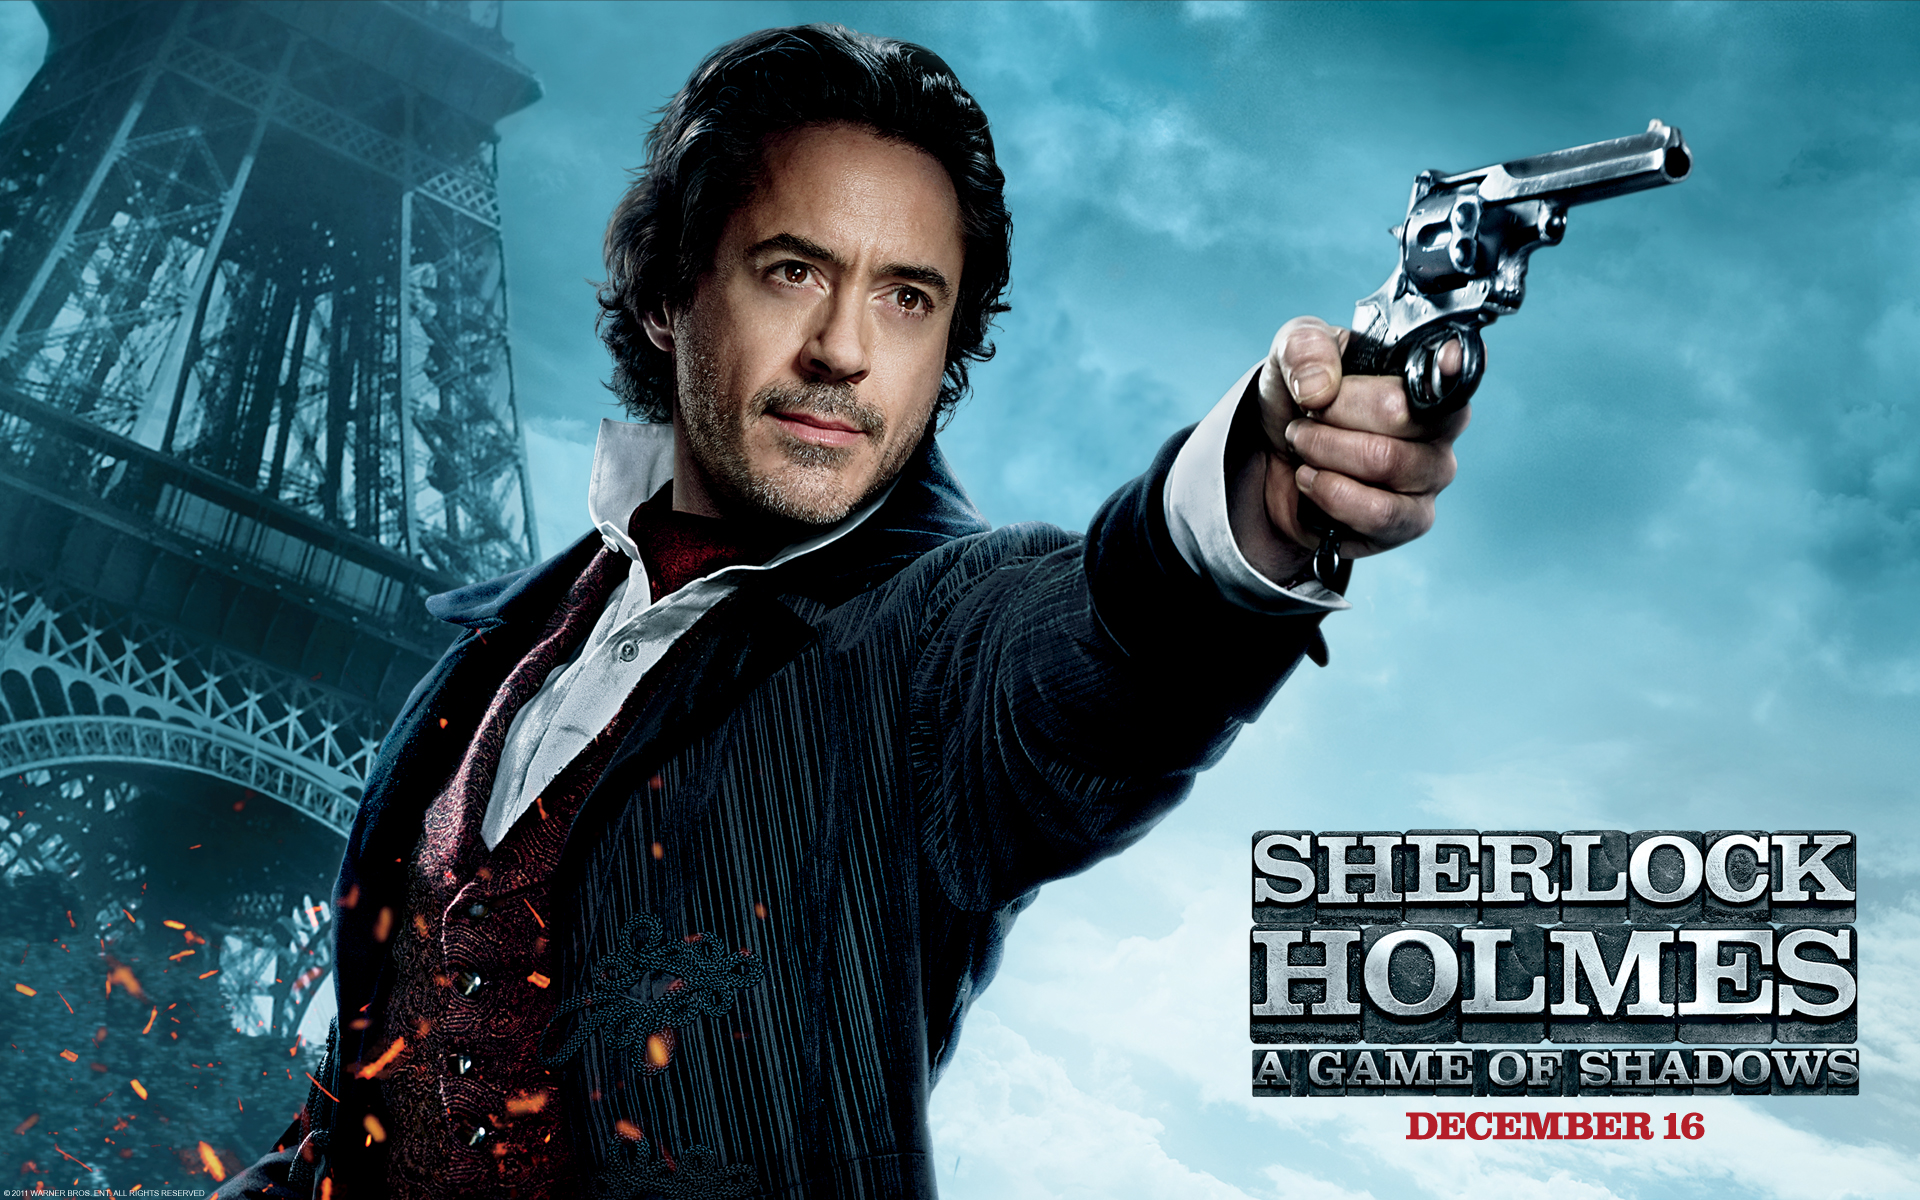 How many of you watched this movie of Sherlock Holmes?